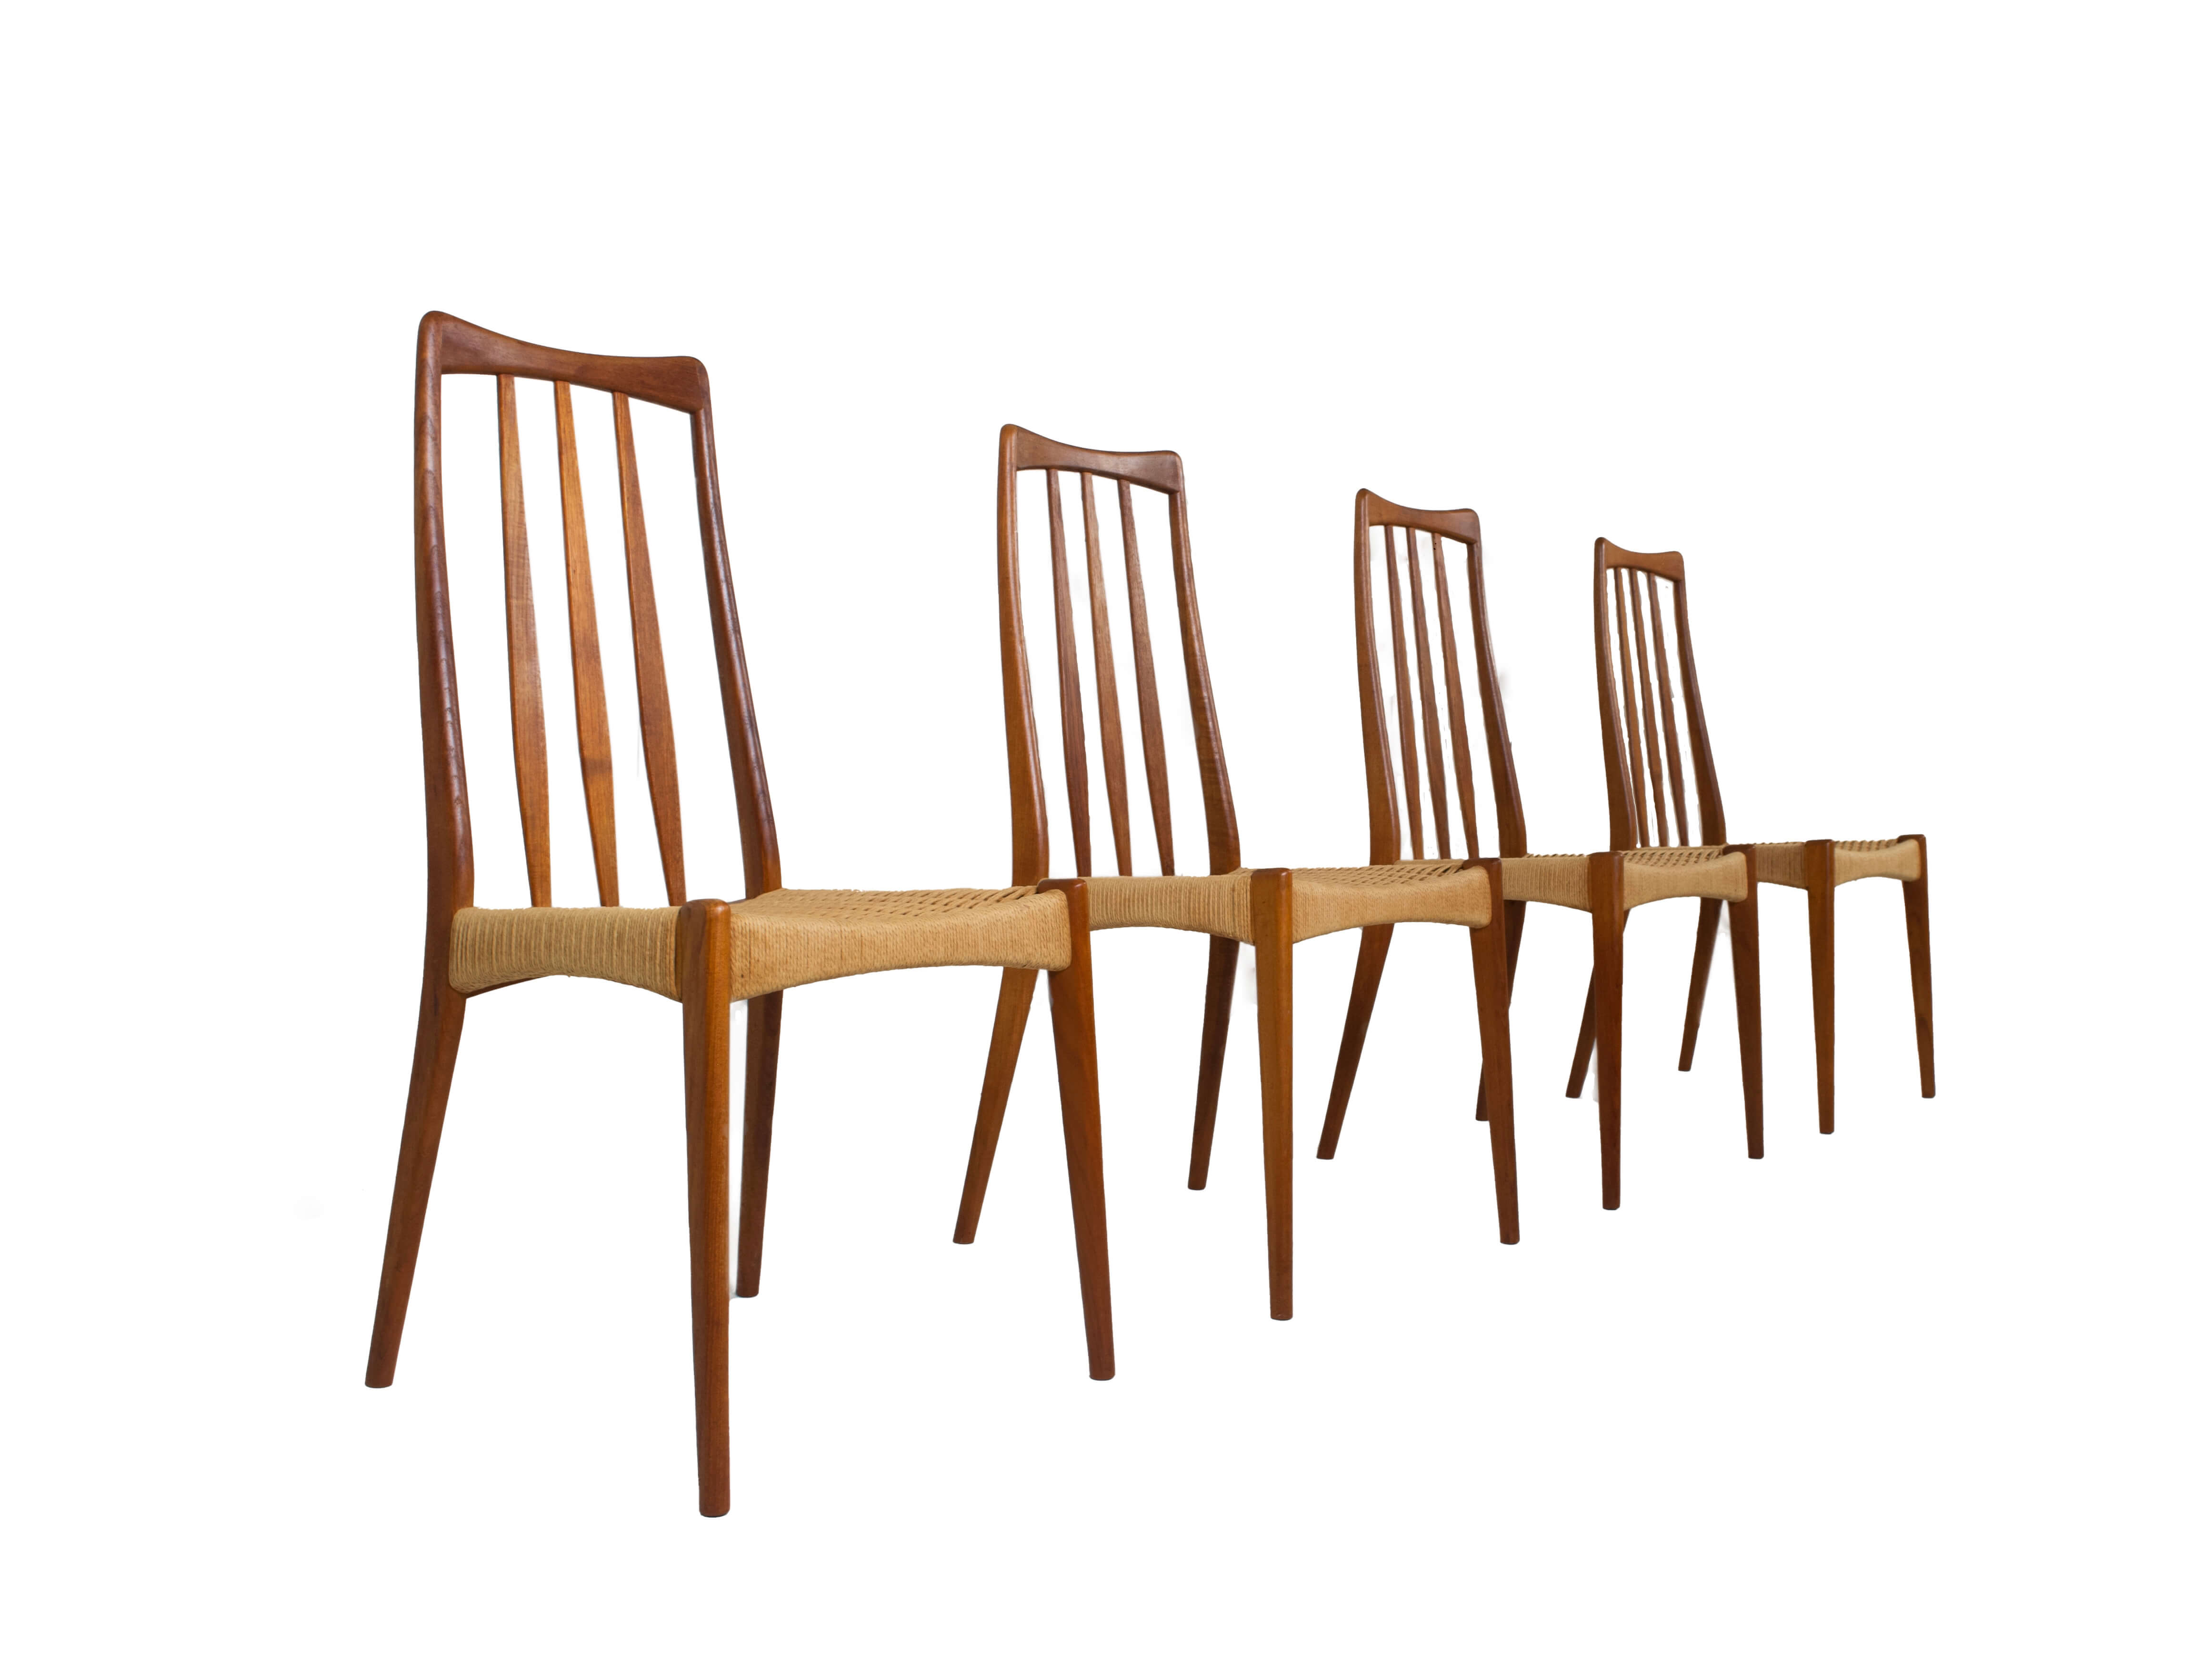 Set of 4 Scandinavian Design Vintage Dining Chairs in Papercord and Teak